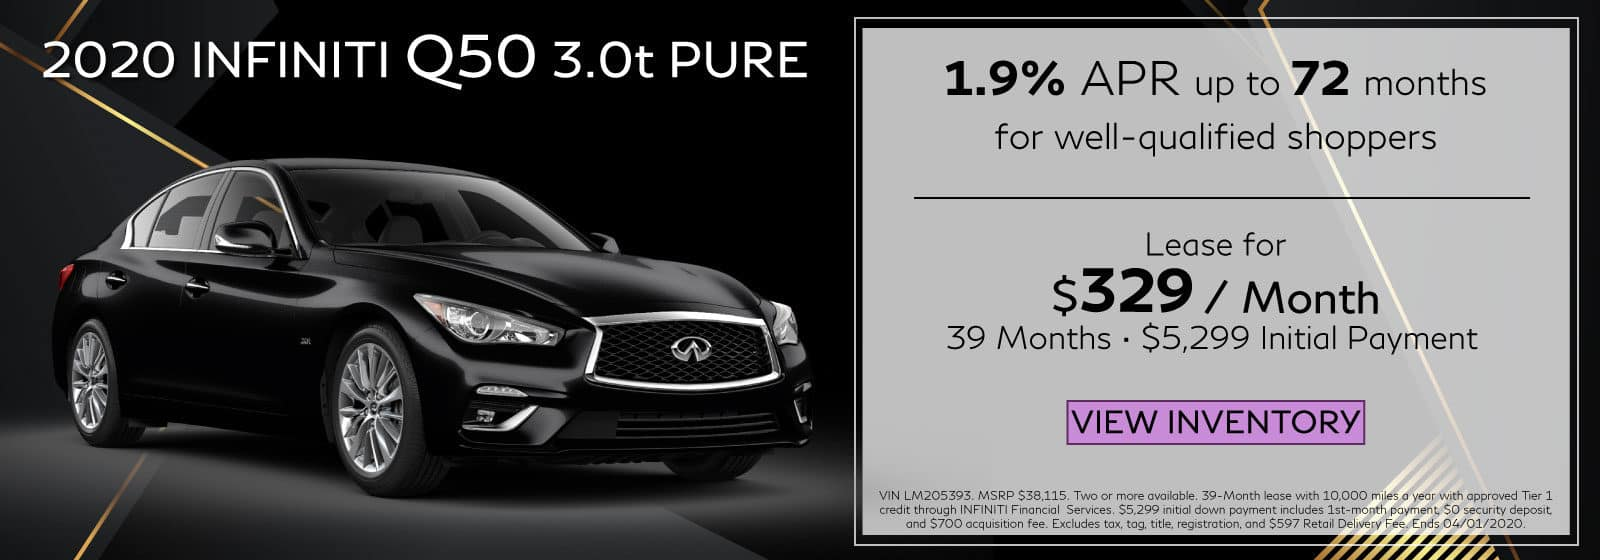 2020 Q50 3.0t LUXE. $329 a month for 39 months. $5,299 initial payment. OR 1.9% APR up to 72 months. Black Q50 on black abstract background.